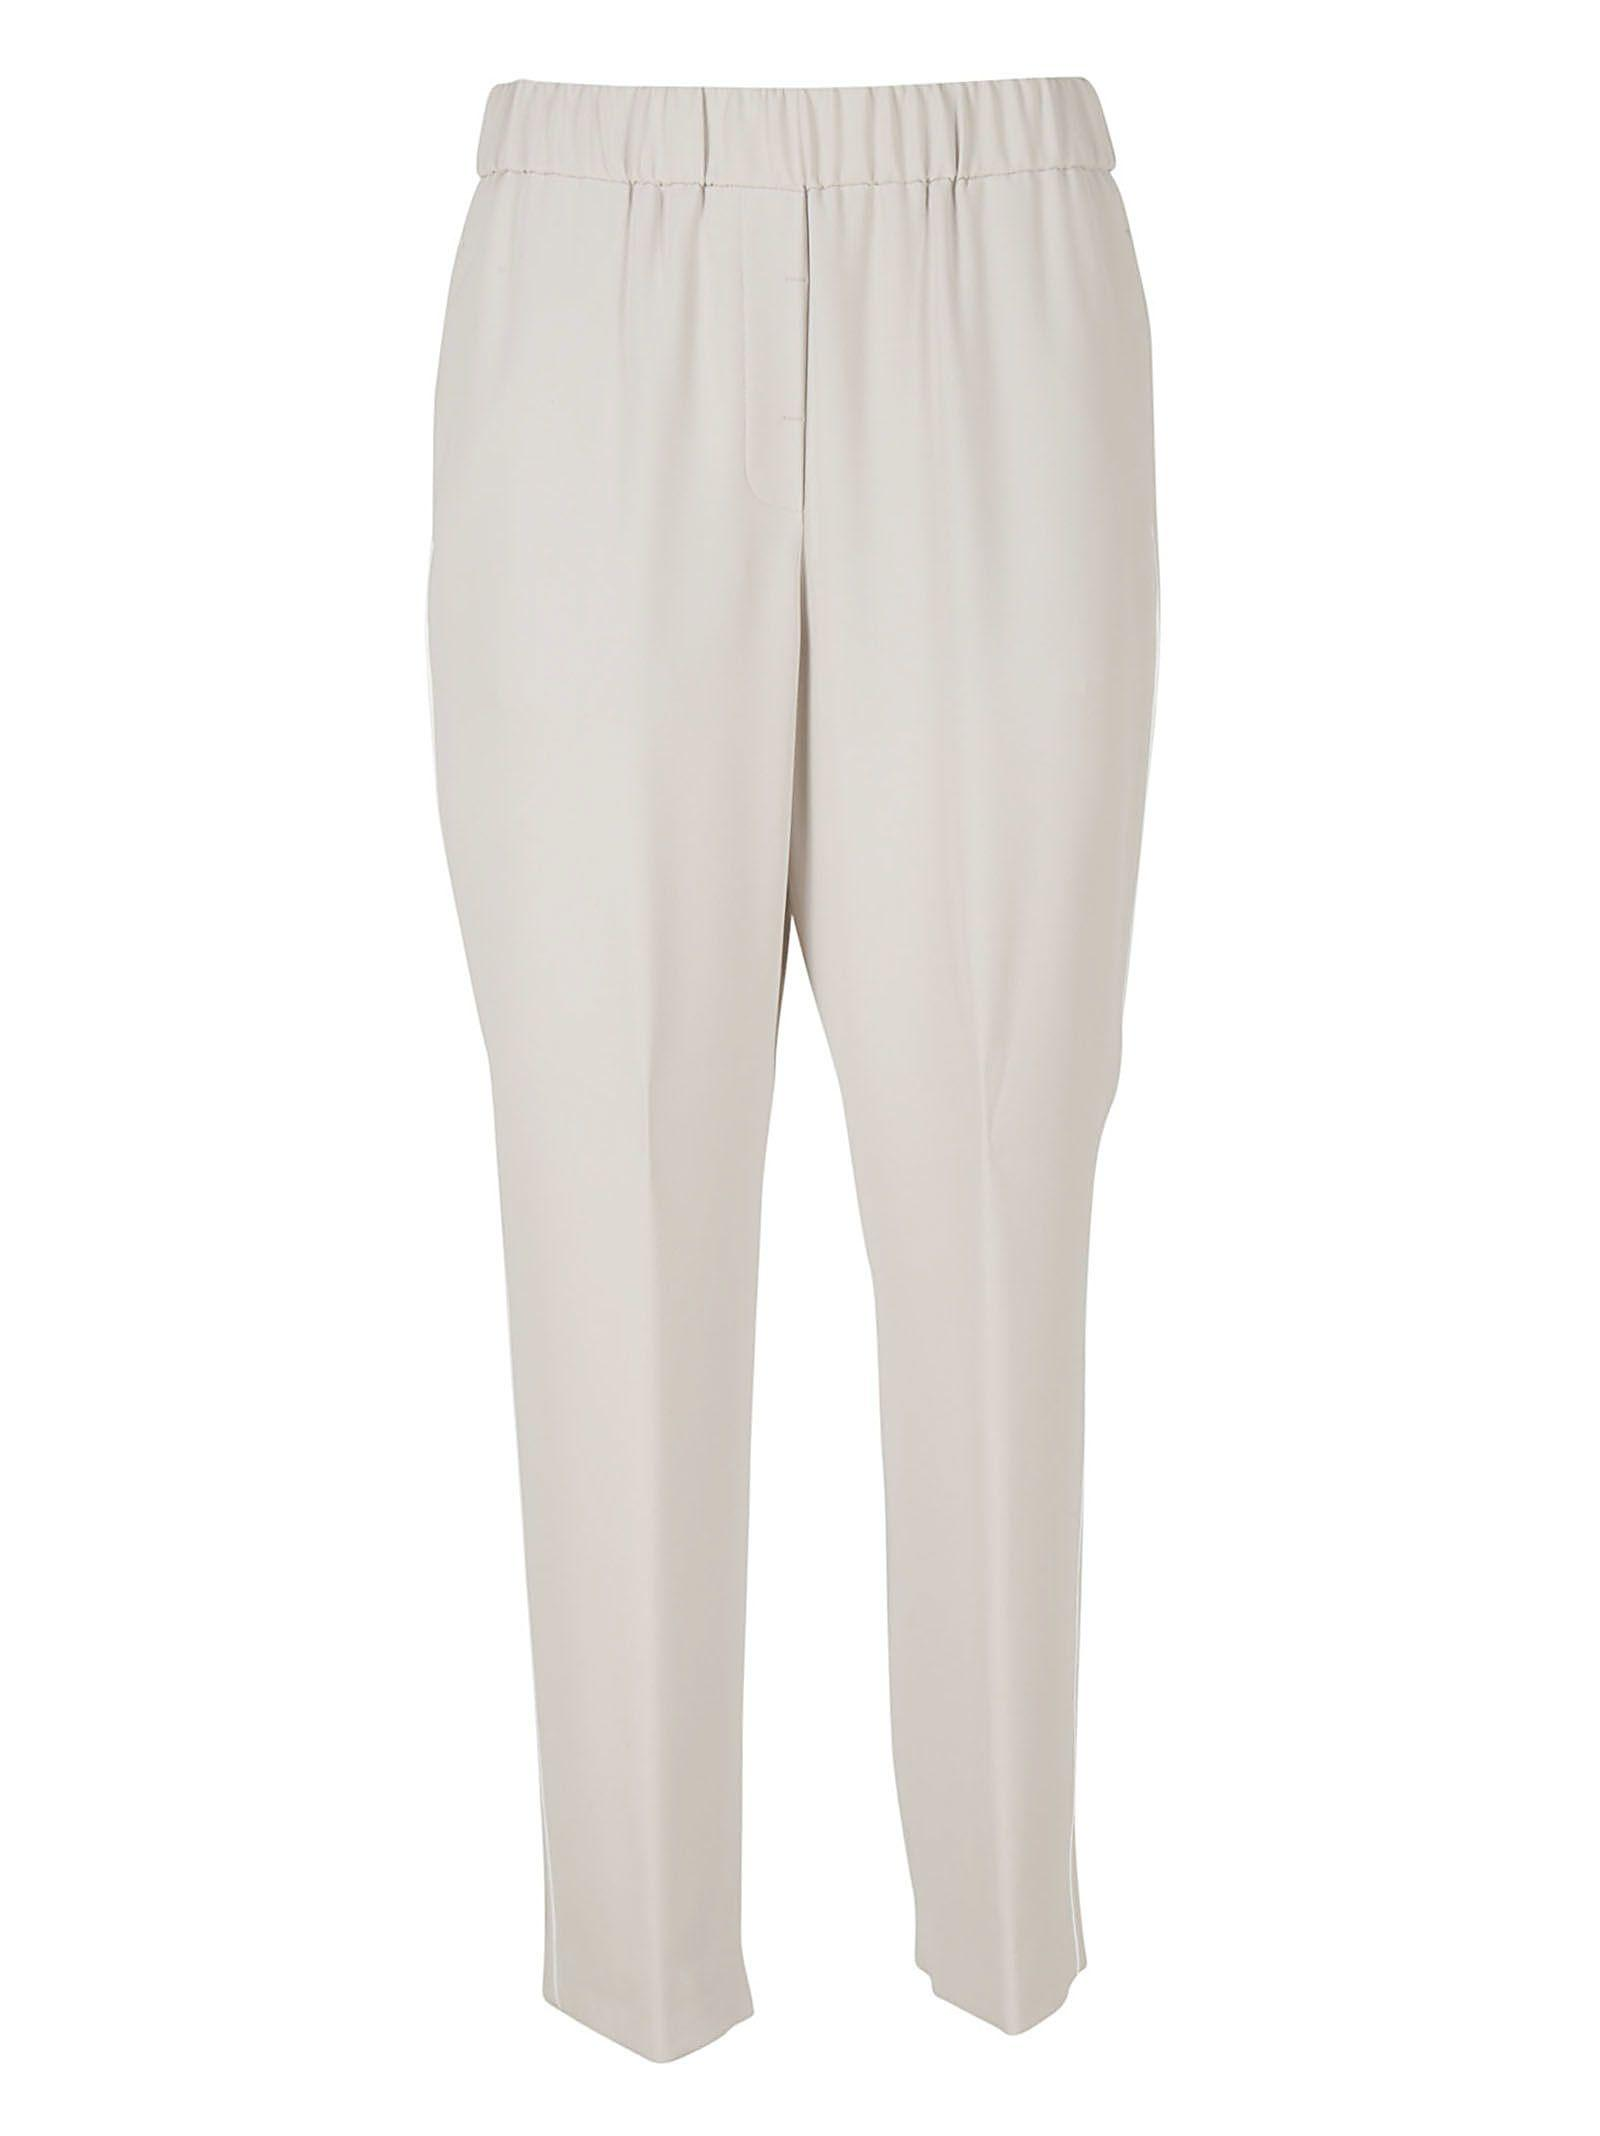 Peserico Trousers With Drawstring In Beige